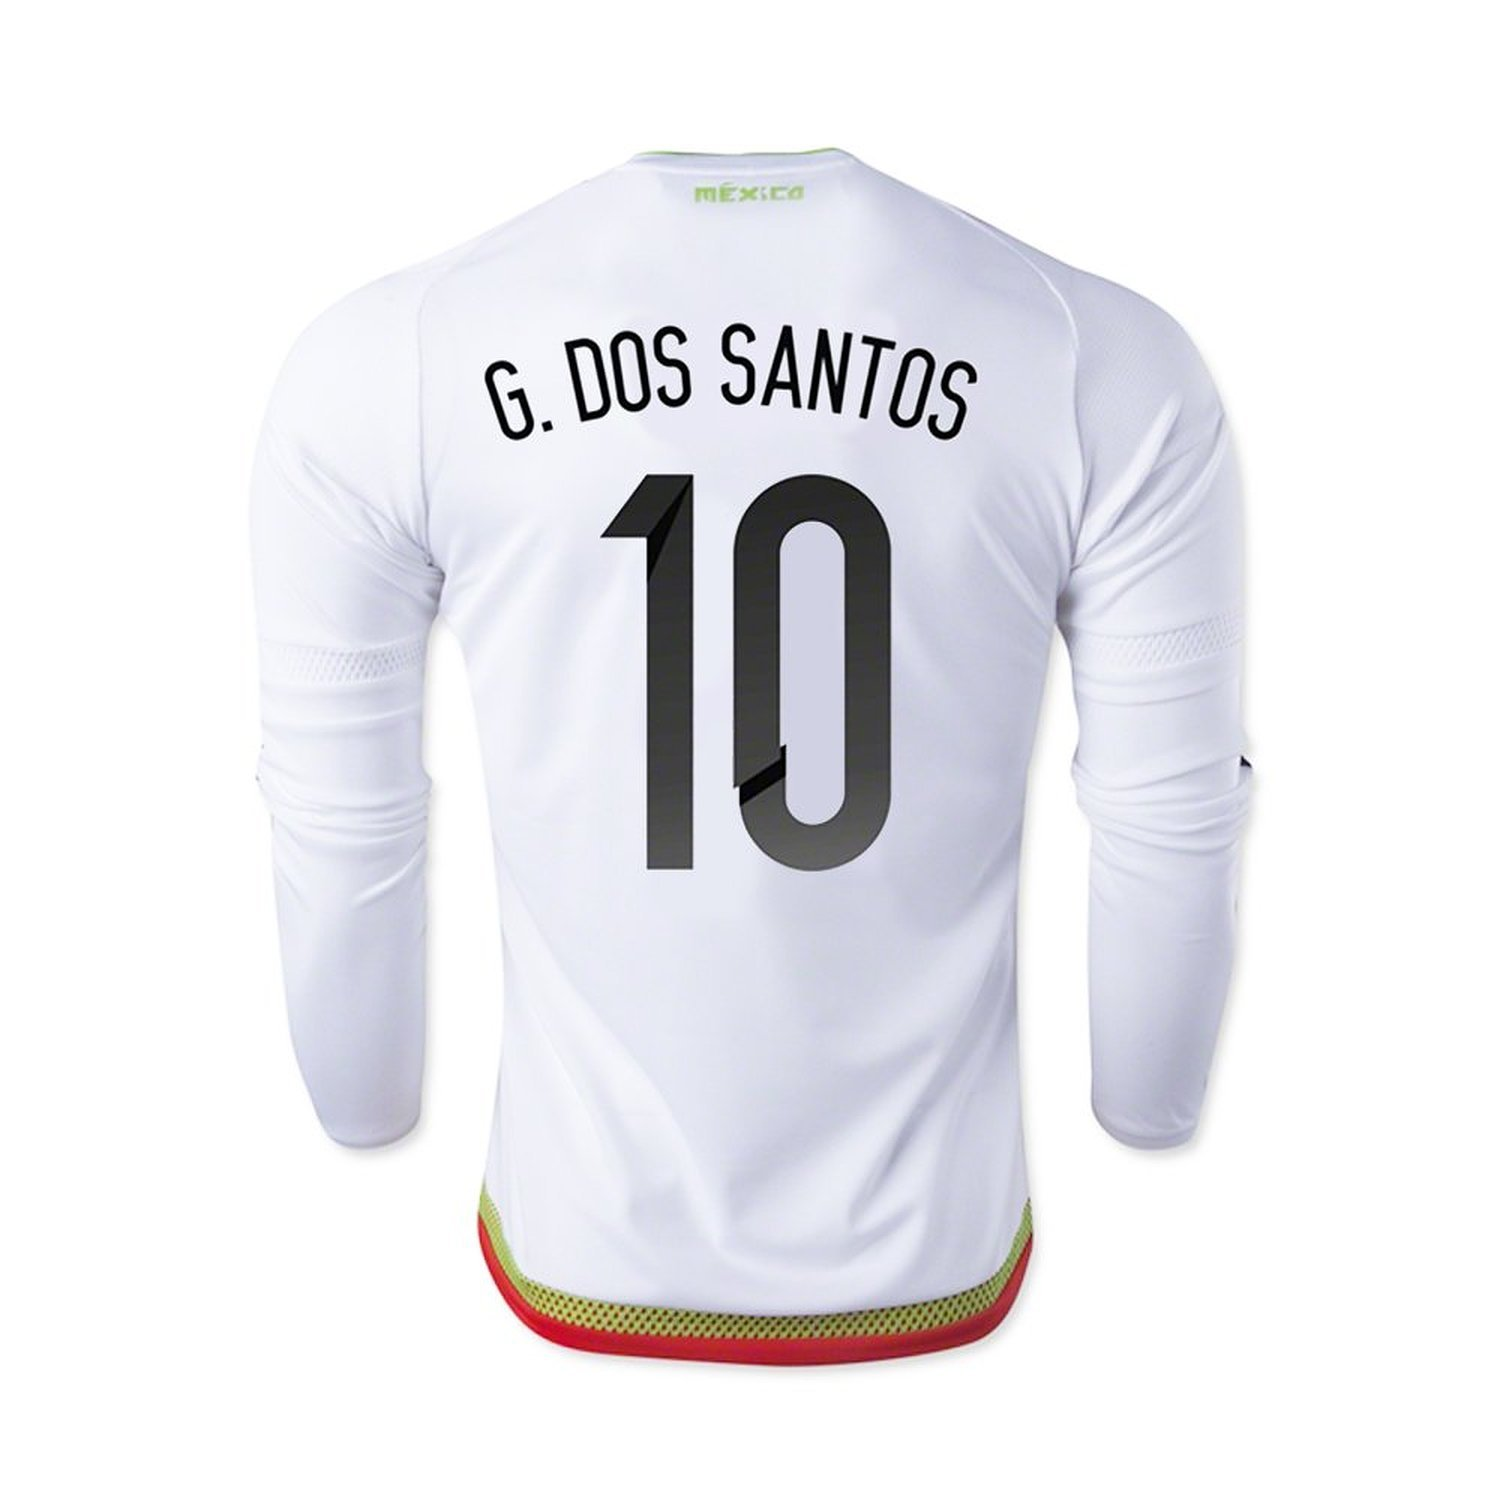 adidas G. Dos Santos #10 Mexico Away Soccer Jersey 2015 -Long Sleeve(Authentic name and number of player)/サッカーユニフォーム メキシコ アウェイ用 ジョバニドスサントス 背番号10 長袖 B014JPWW9I   XL